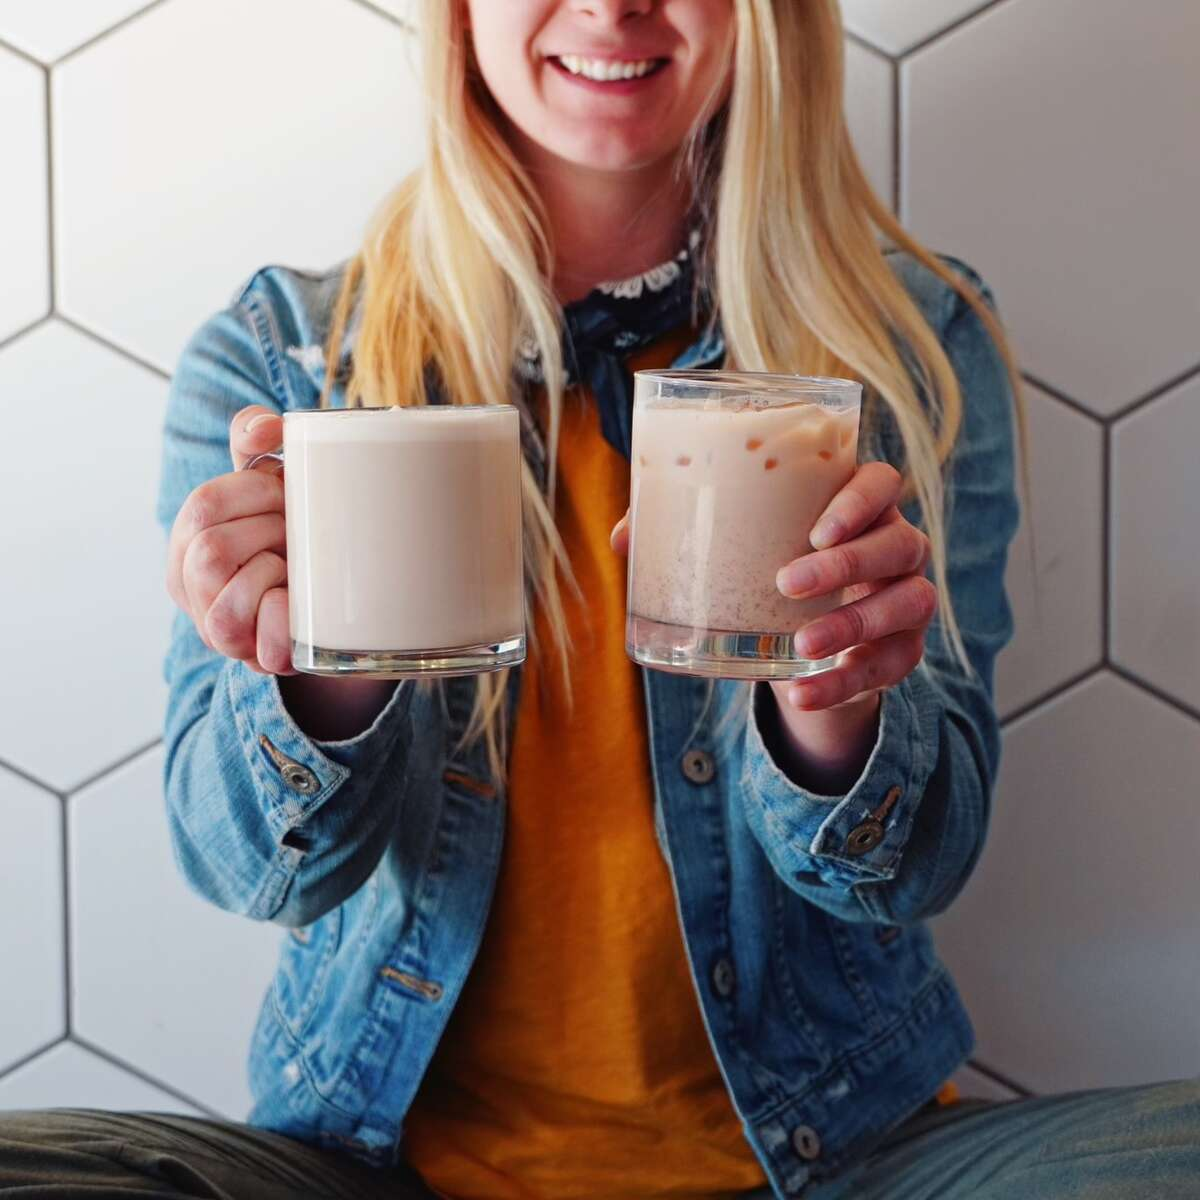 Marissa Bourcier of Linwood frequented Grove Tea Lounge as a customer during its first year in business, before joining the staff in September of 2020. (Photo provided/Marissa Bourcier)